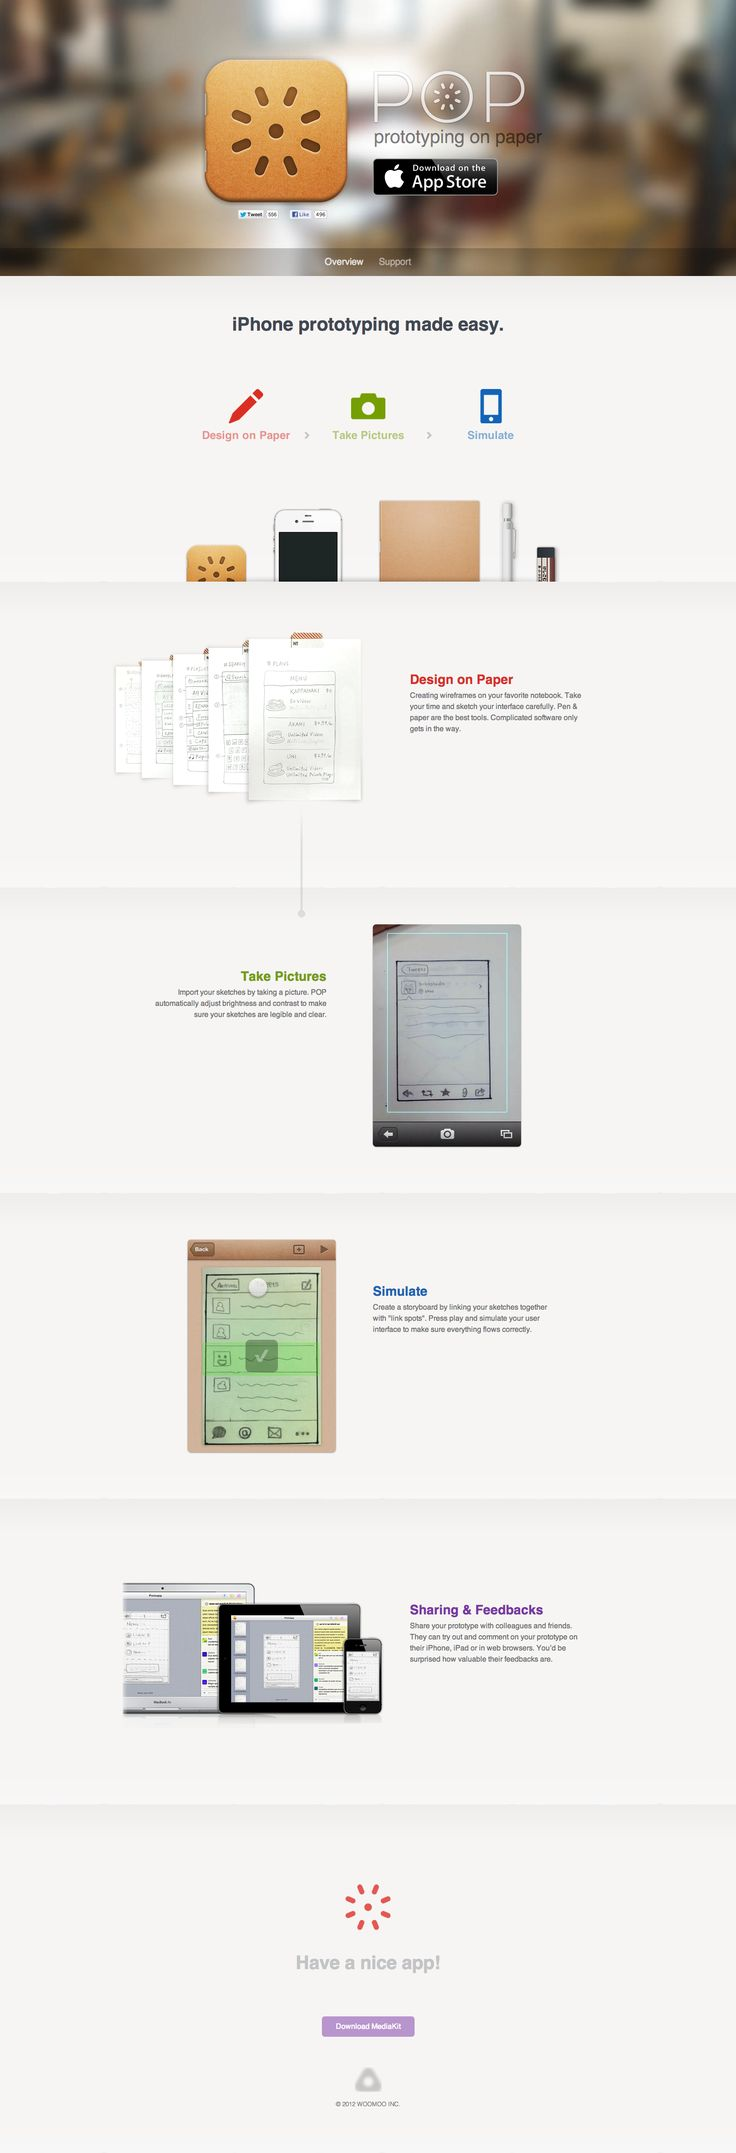 Use your iOS device for paper prototyping   ***  Translating paper wireframes and mockups into interactive prototypes just got a whole lot eaiser. POP - Prototyping on Paper, a free iOS app, makes it easy to take your paper wireframes and make them interactive. All you have to do is take a photo of your paper wireframe with your iPhone or iPad, and then use POP's tools to create an interactive prototype.